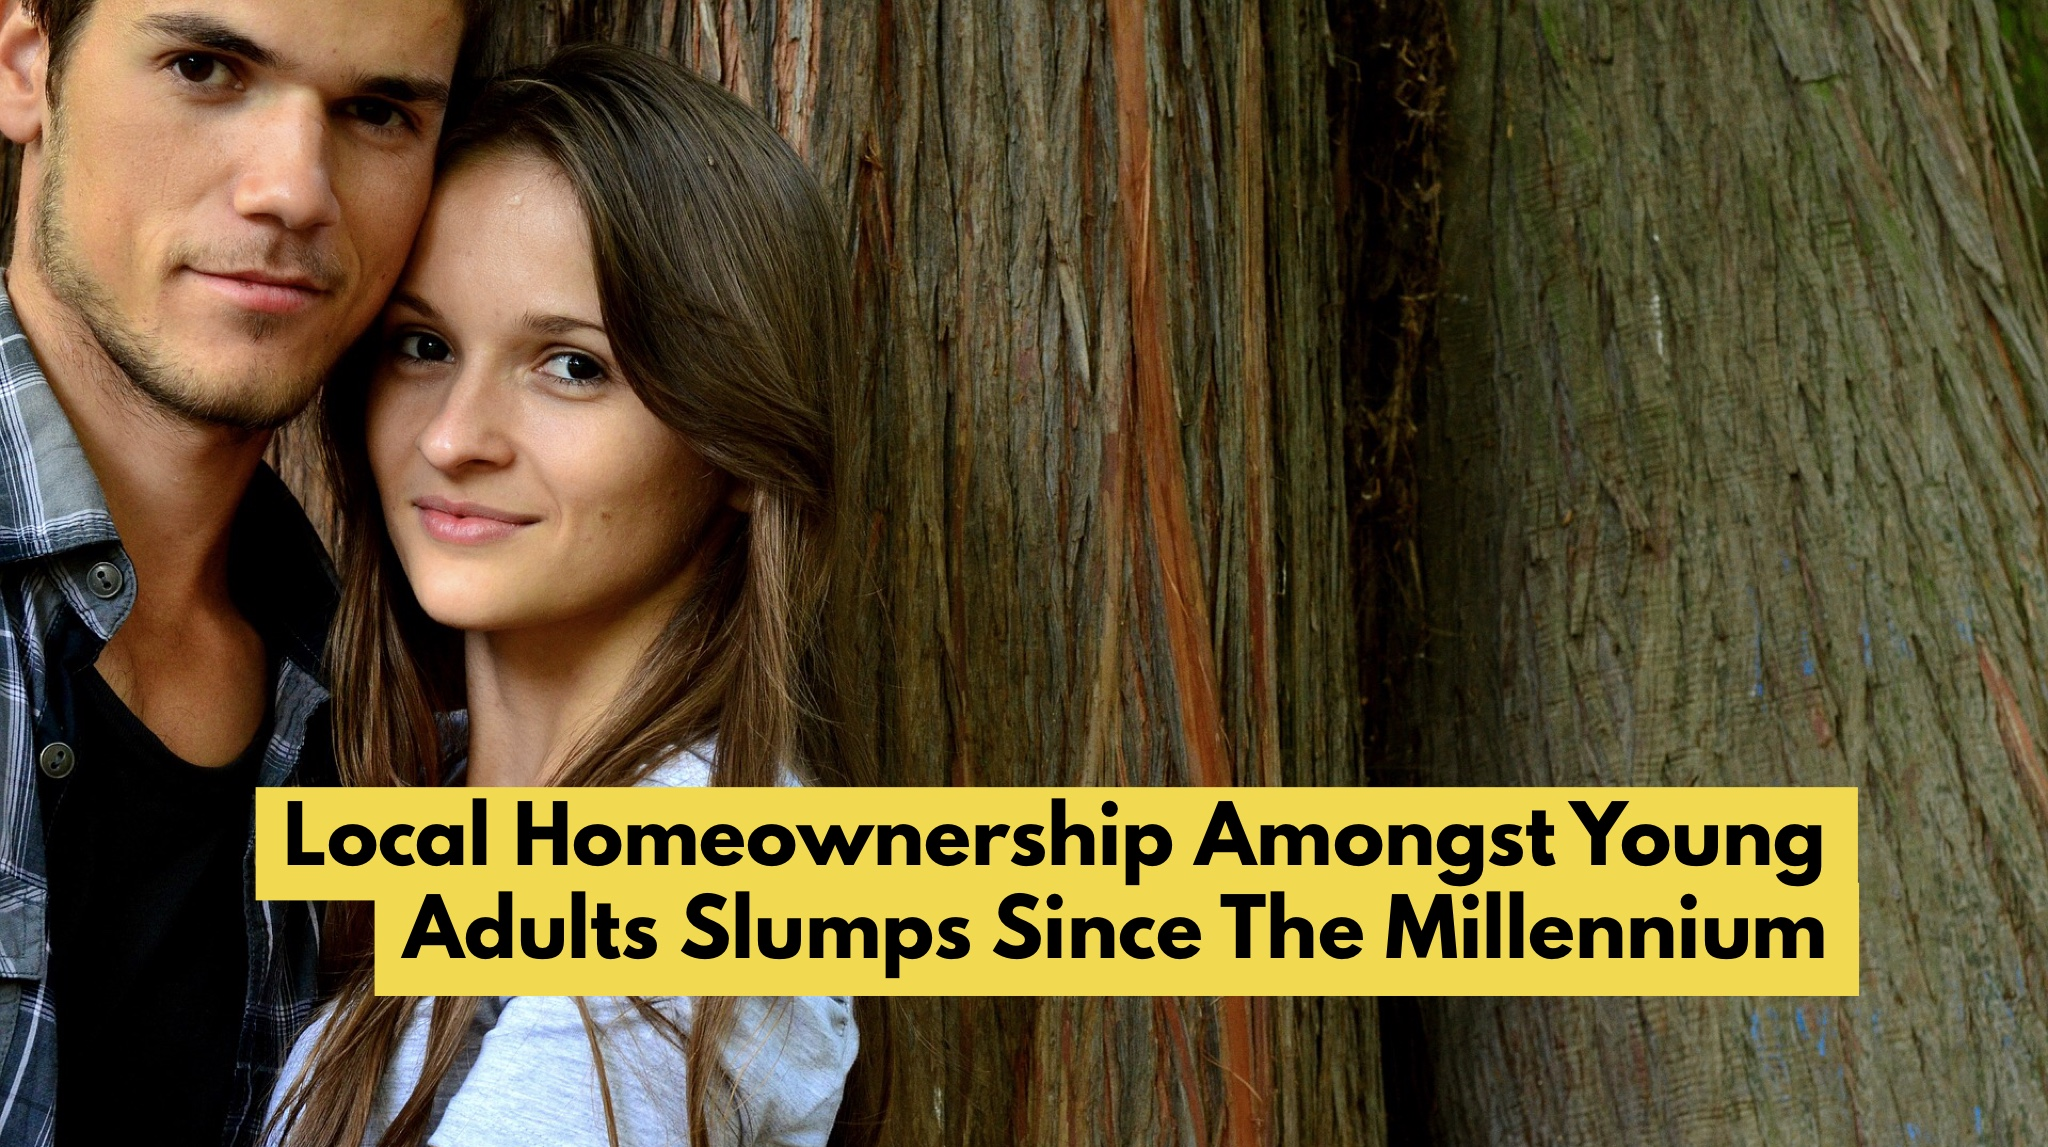 Homeownership Amongst Canterbury's Young Adults Slumps to 34.28%